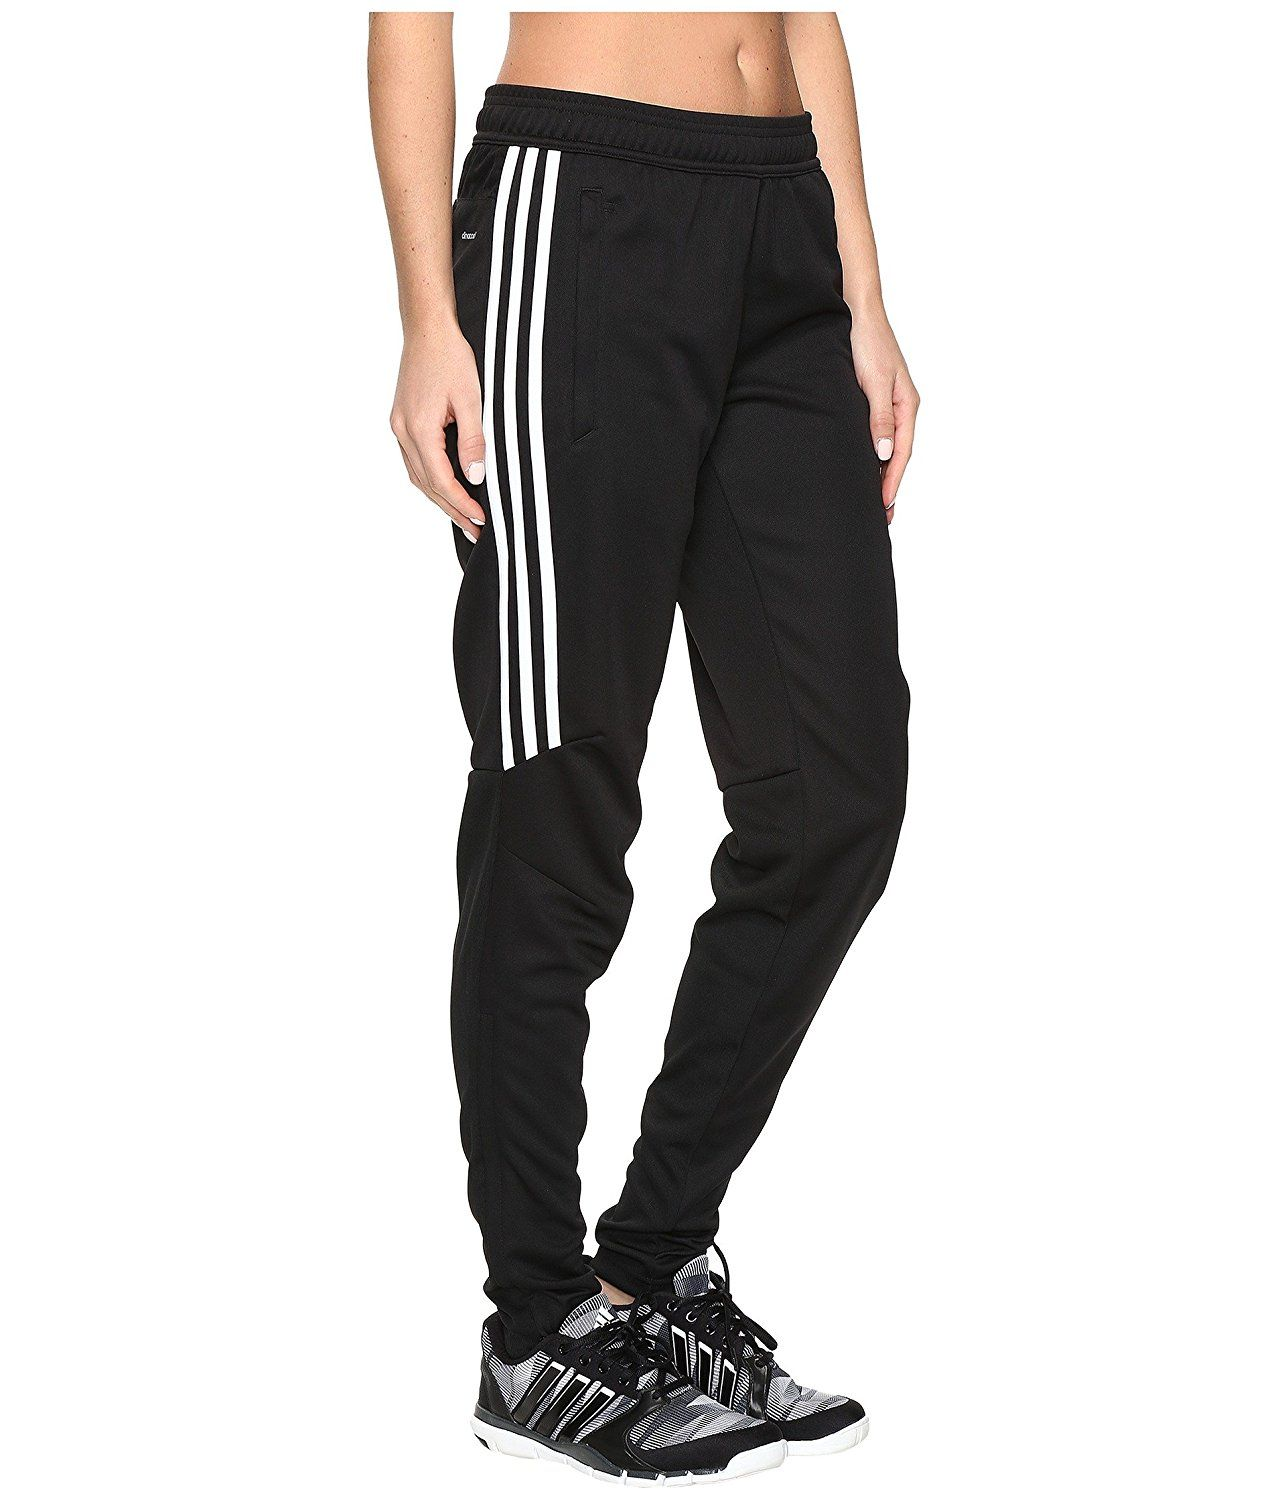 6425ece9eabcf Amazon.com: adidas Women's Soccer Tiro 17 Training Pants: Sports ...